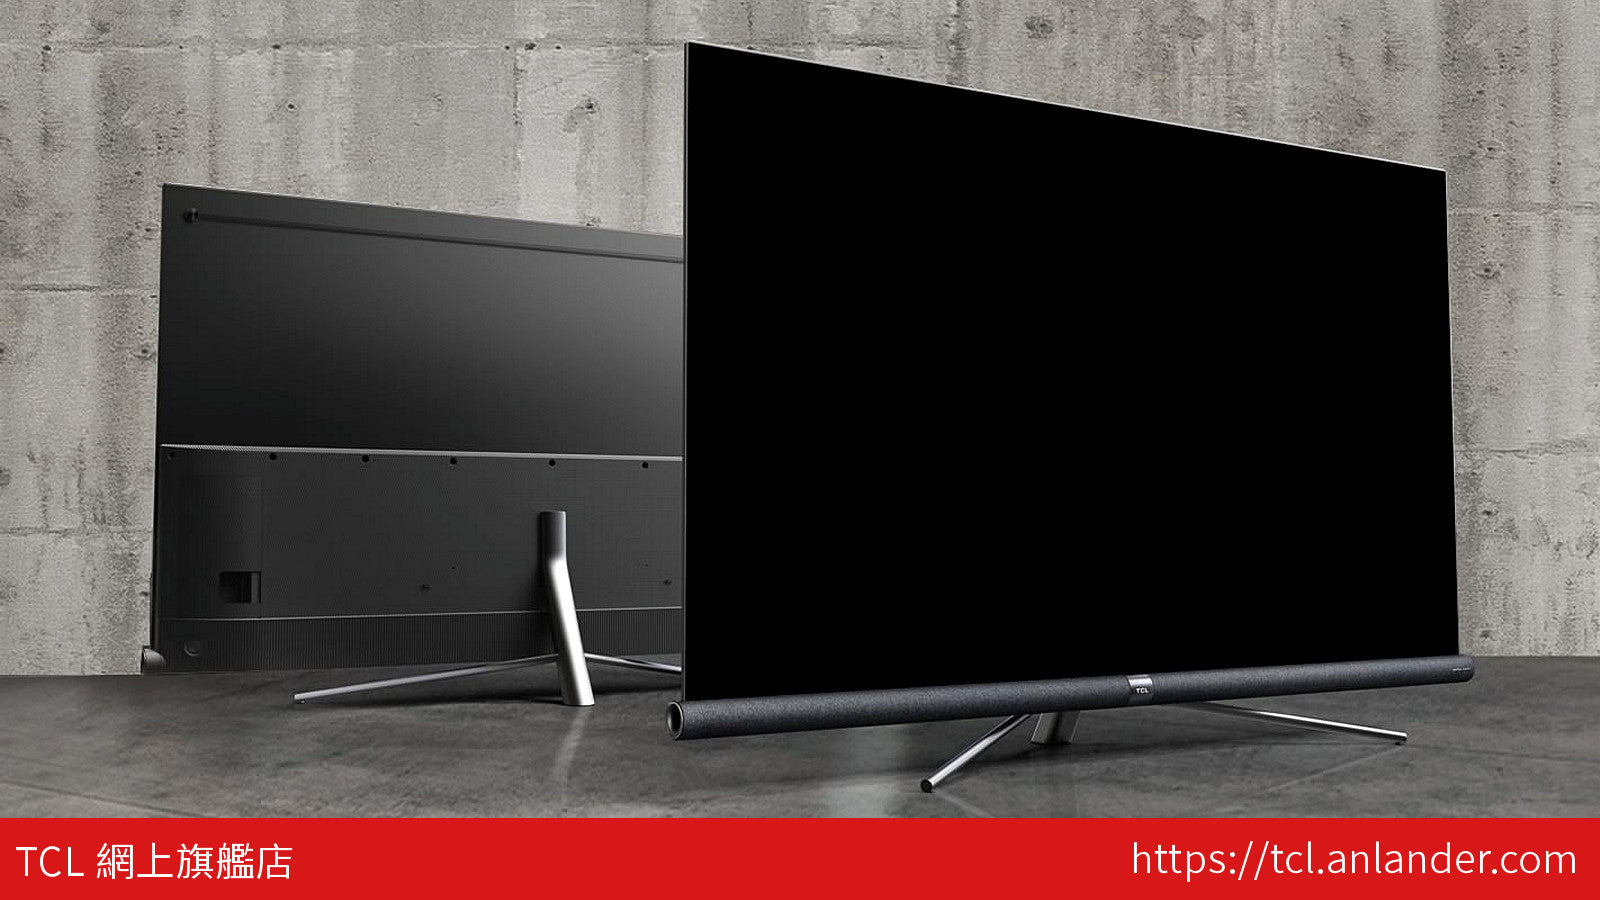 TCL C6 4K UHD 超高清 Android TV 智能電視 - 65吋 (C6US)